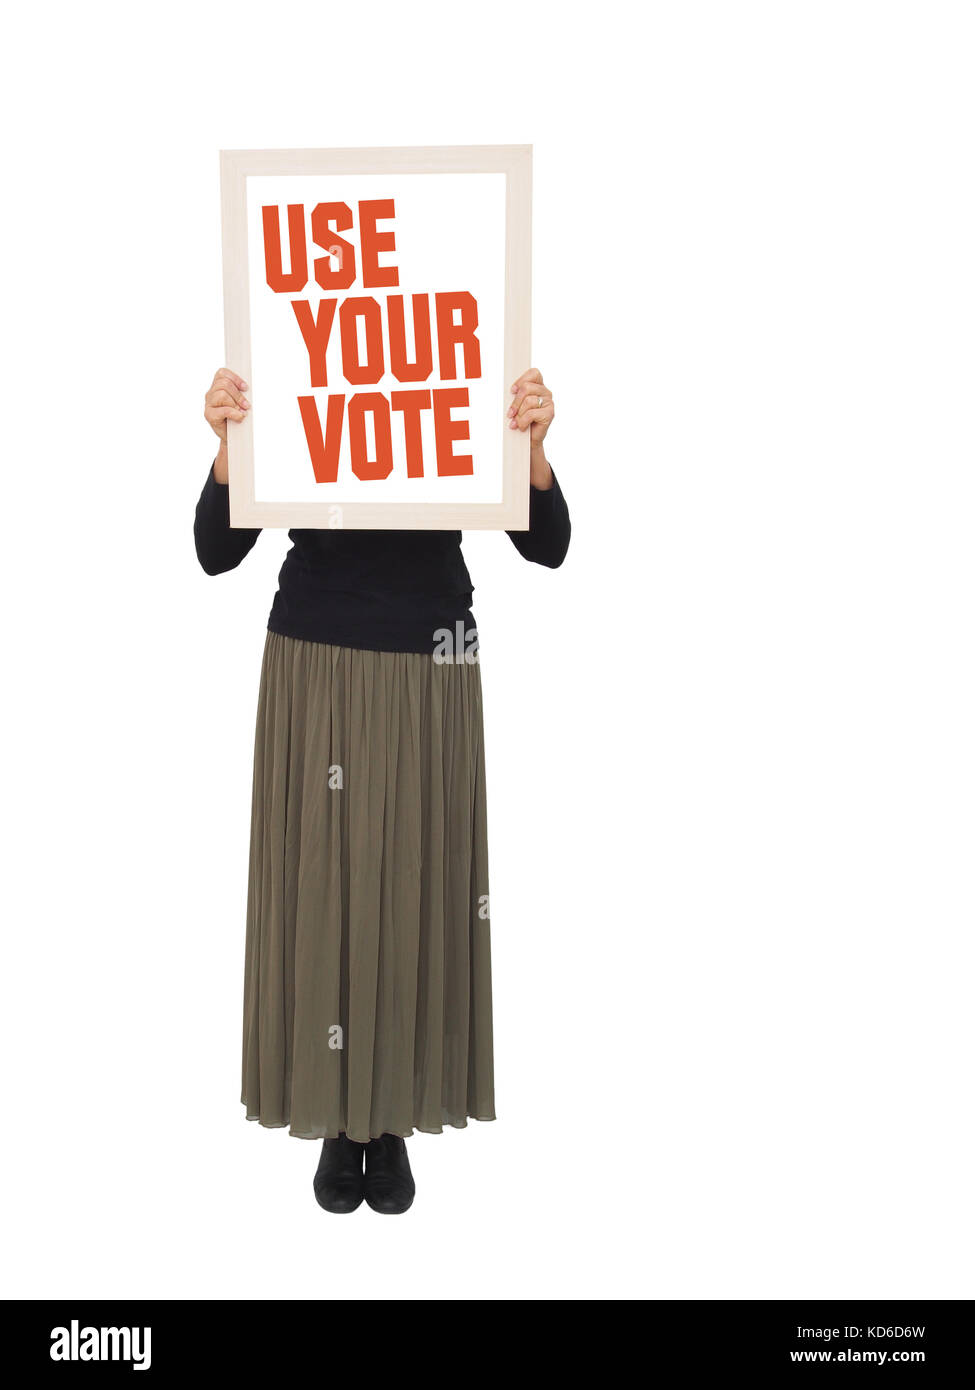 Woman with use your vote placard. - Stock Image